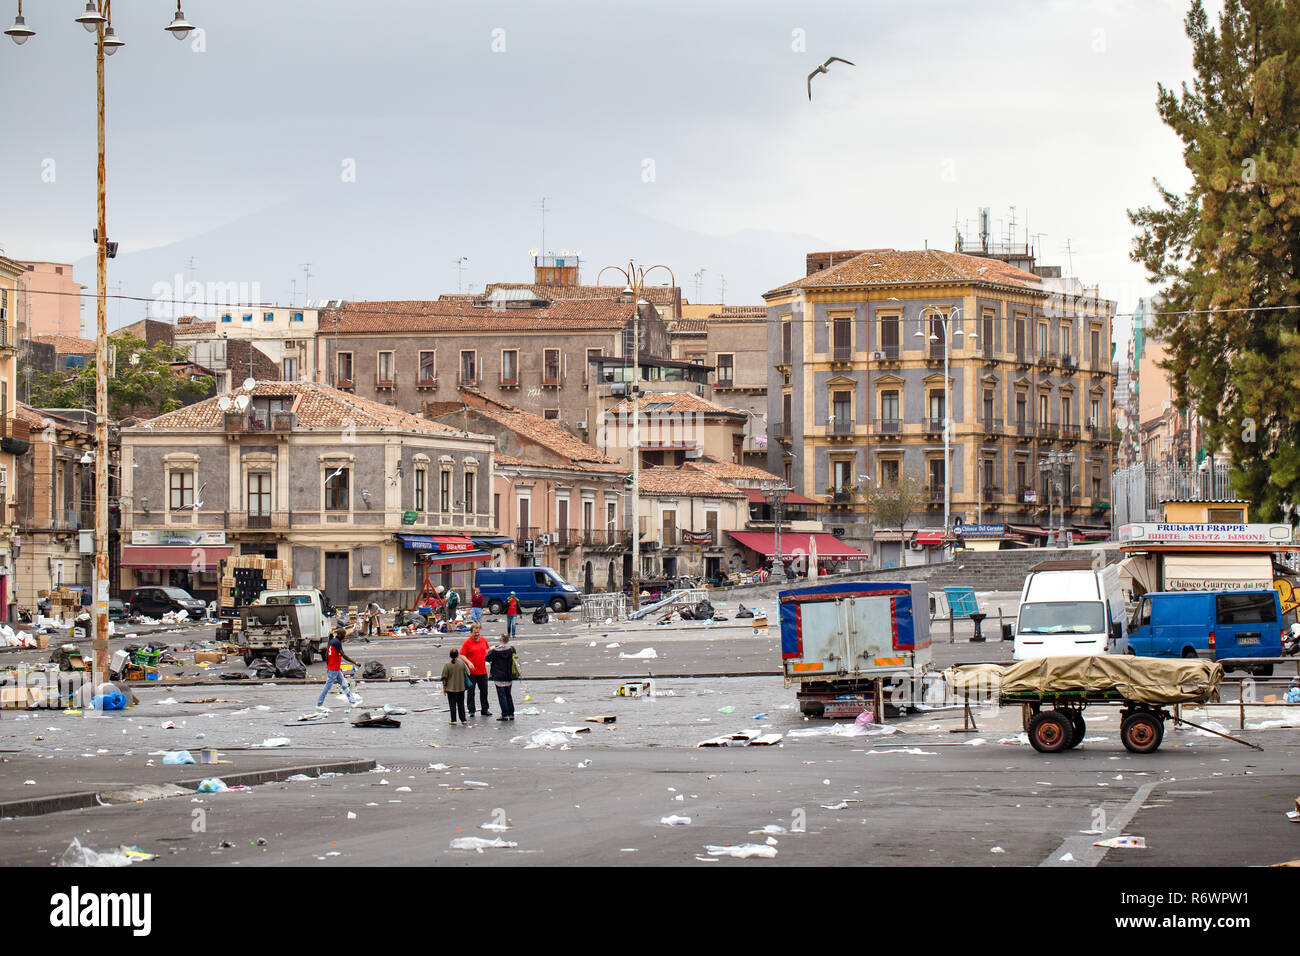 Catania, Sicily / Italy - Mess on the market place. After fair. - Stock Image